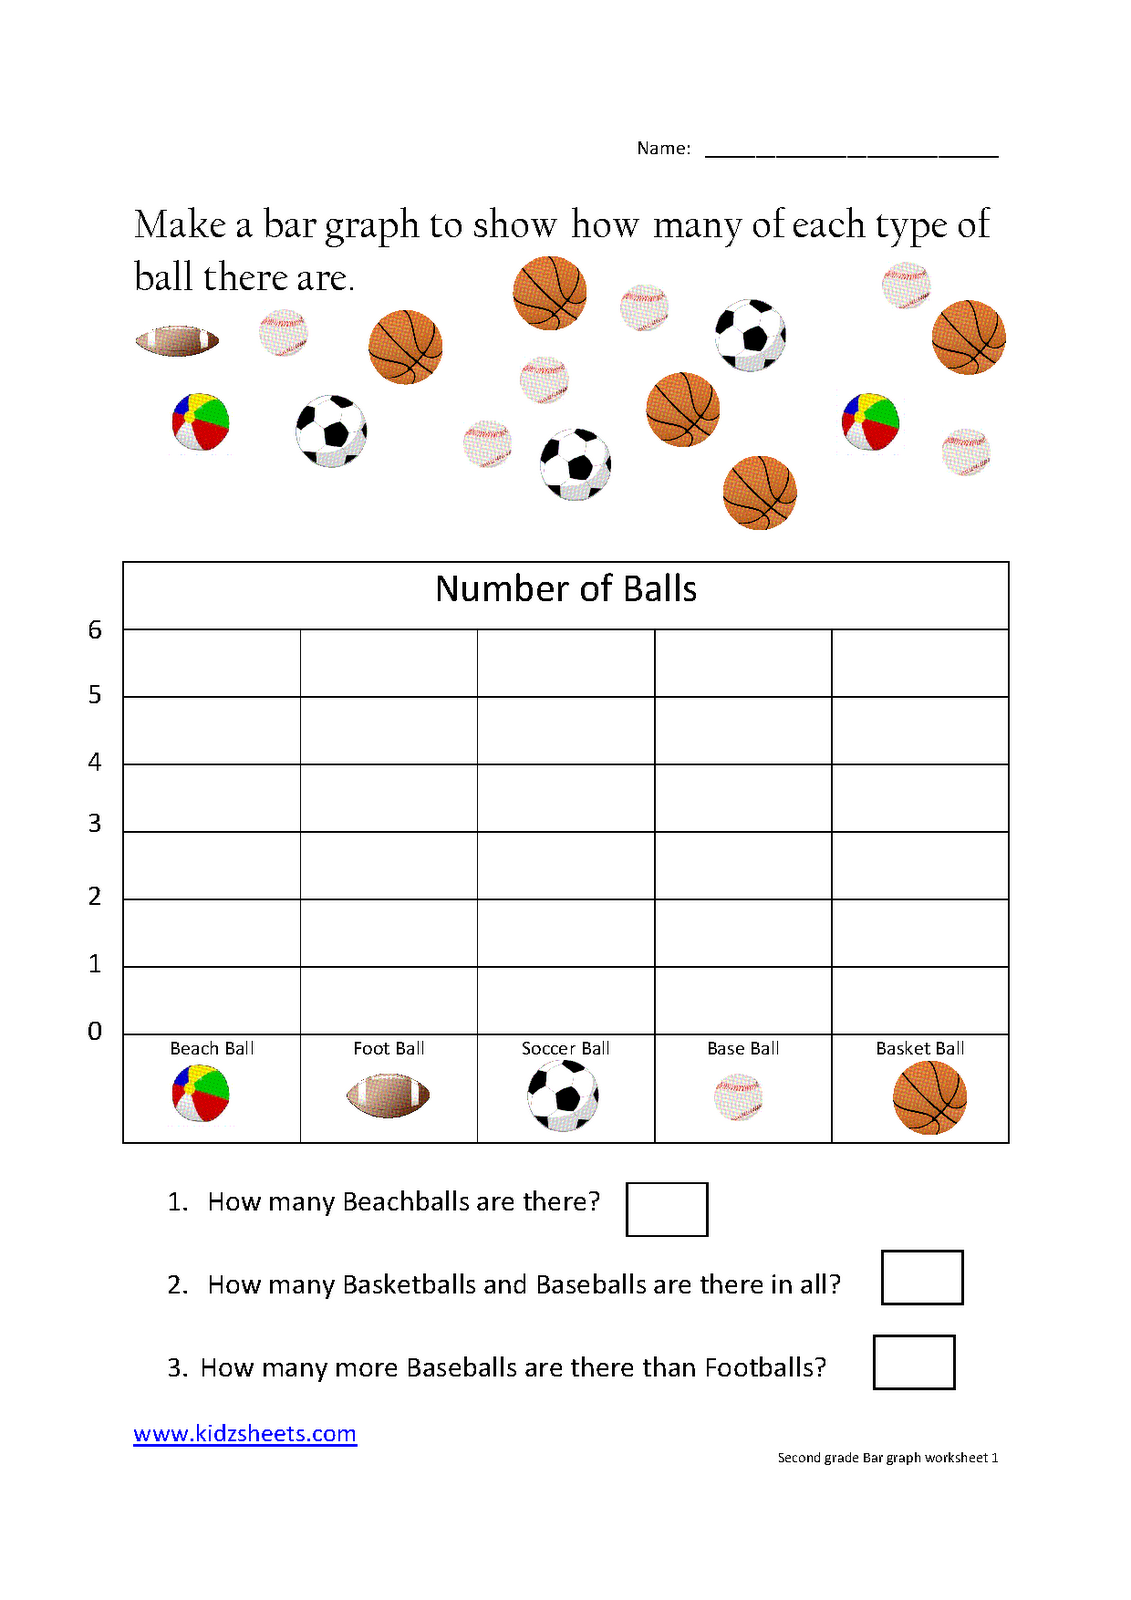 math worksheet : kidz worksheets second grade bar graph worksheet1 : Maths Graphs Worksheets